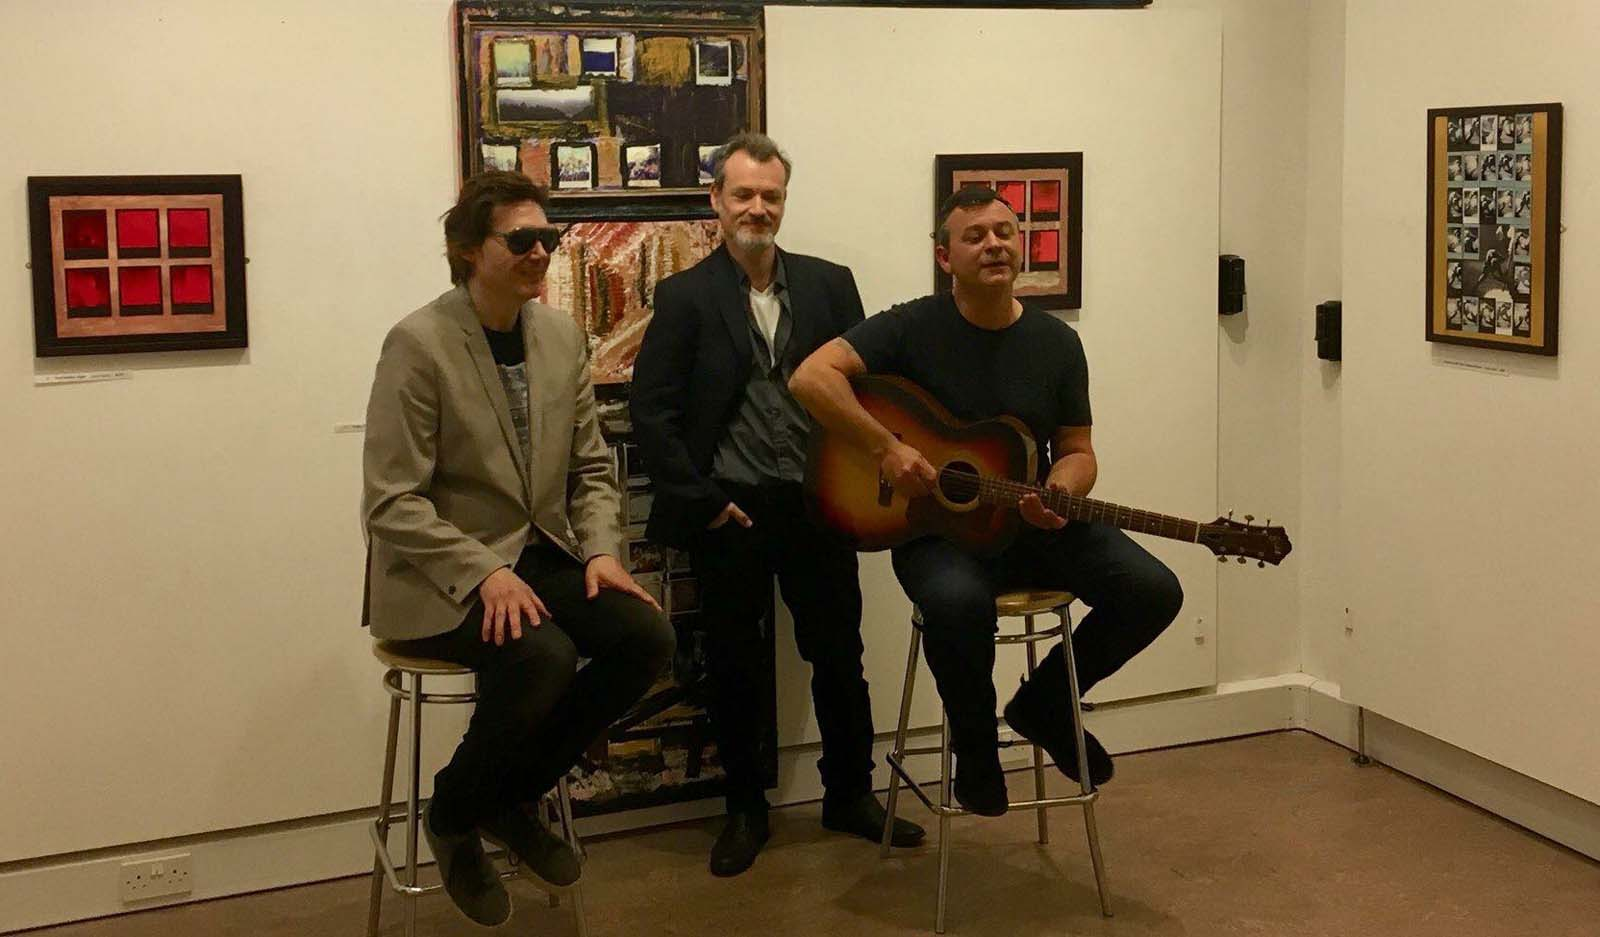 photo of three men in a gallery two of them seated and one of them holding a guitar and singing